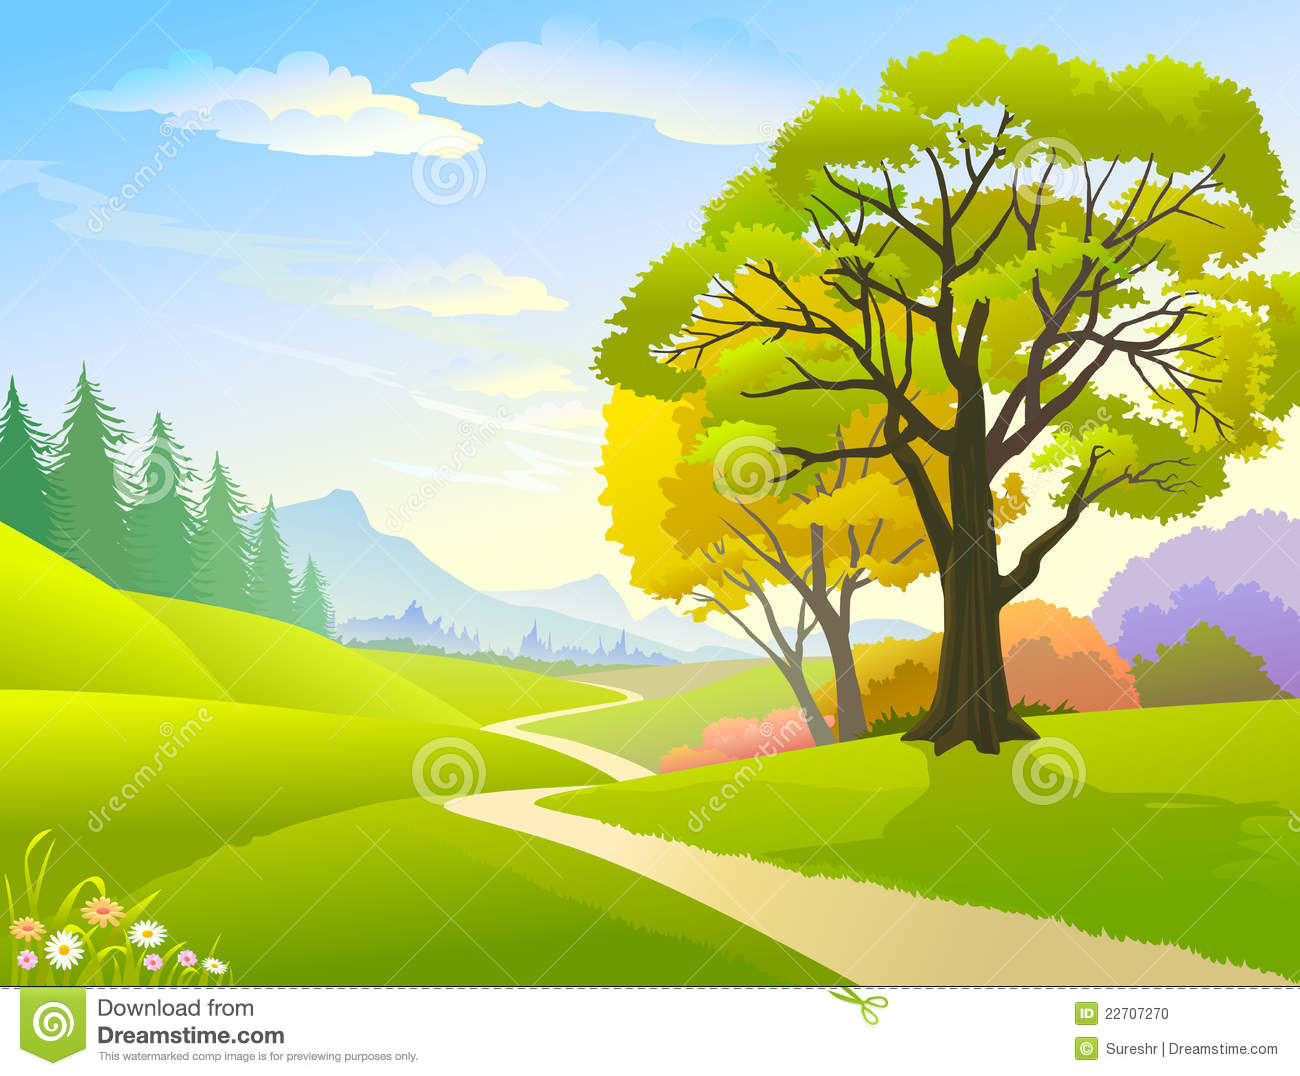 Pathway clipart #5, Download drawings